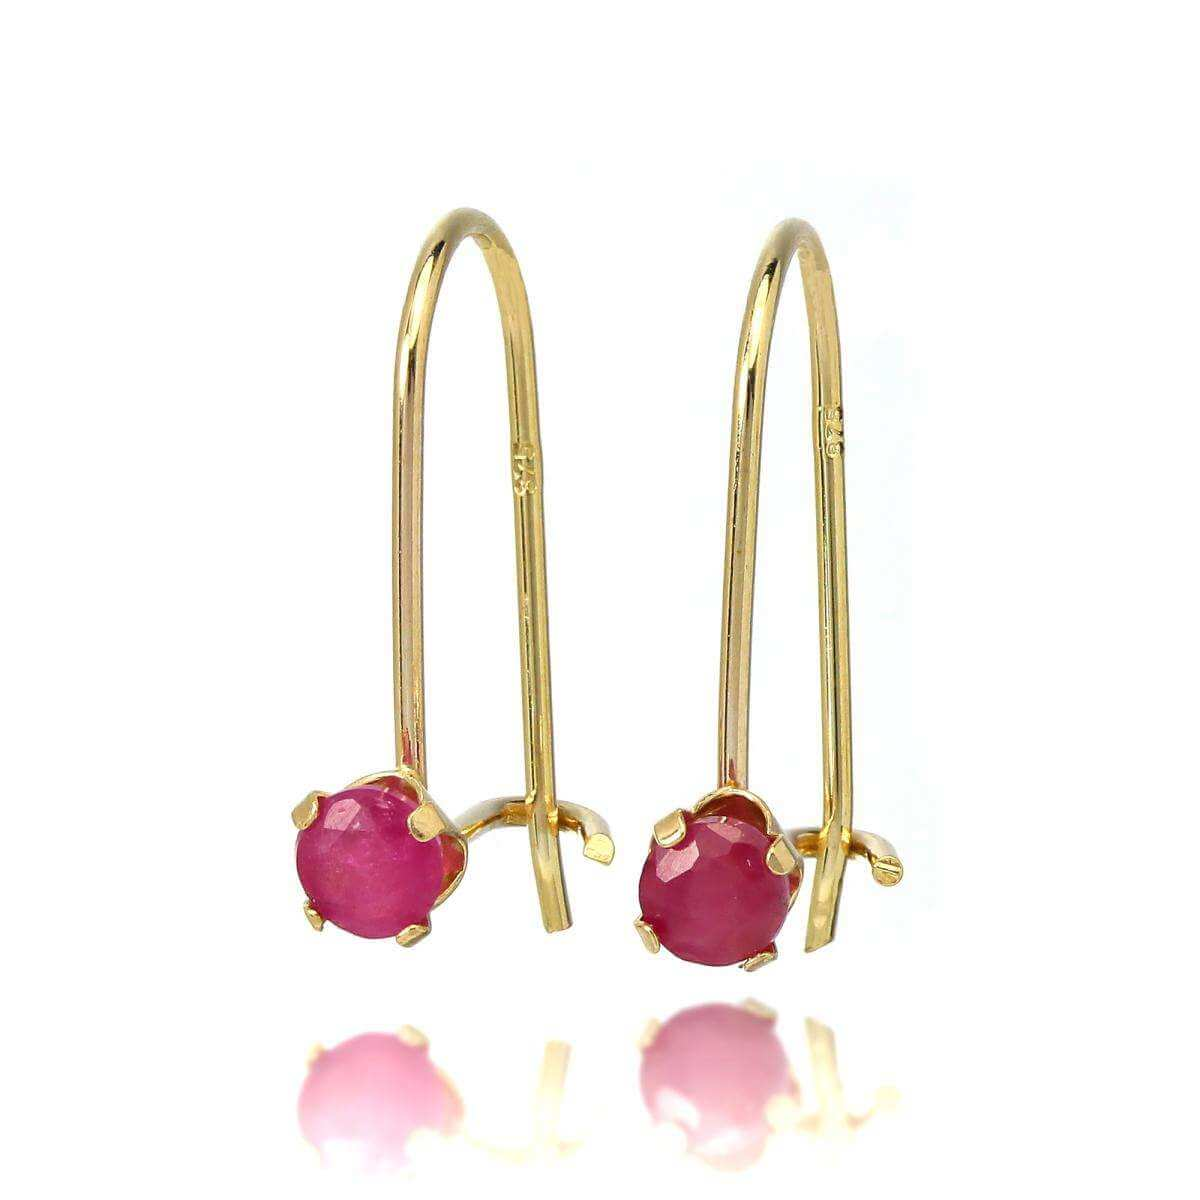 9ct Gold & 3mm Round Gemstone Leverback Earrings Ruby